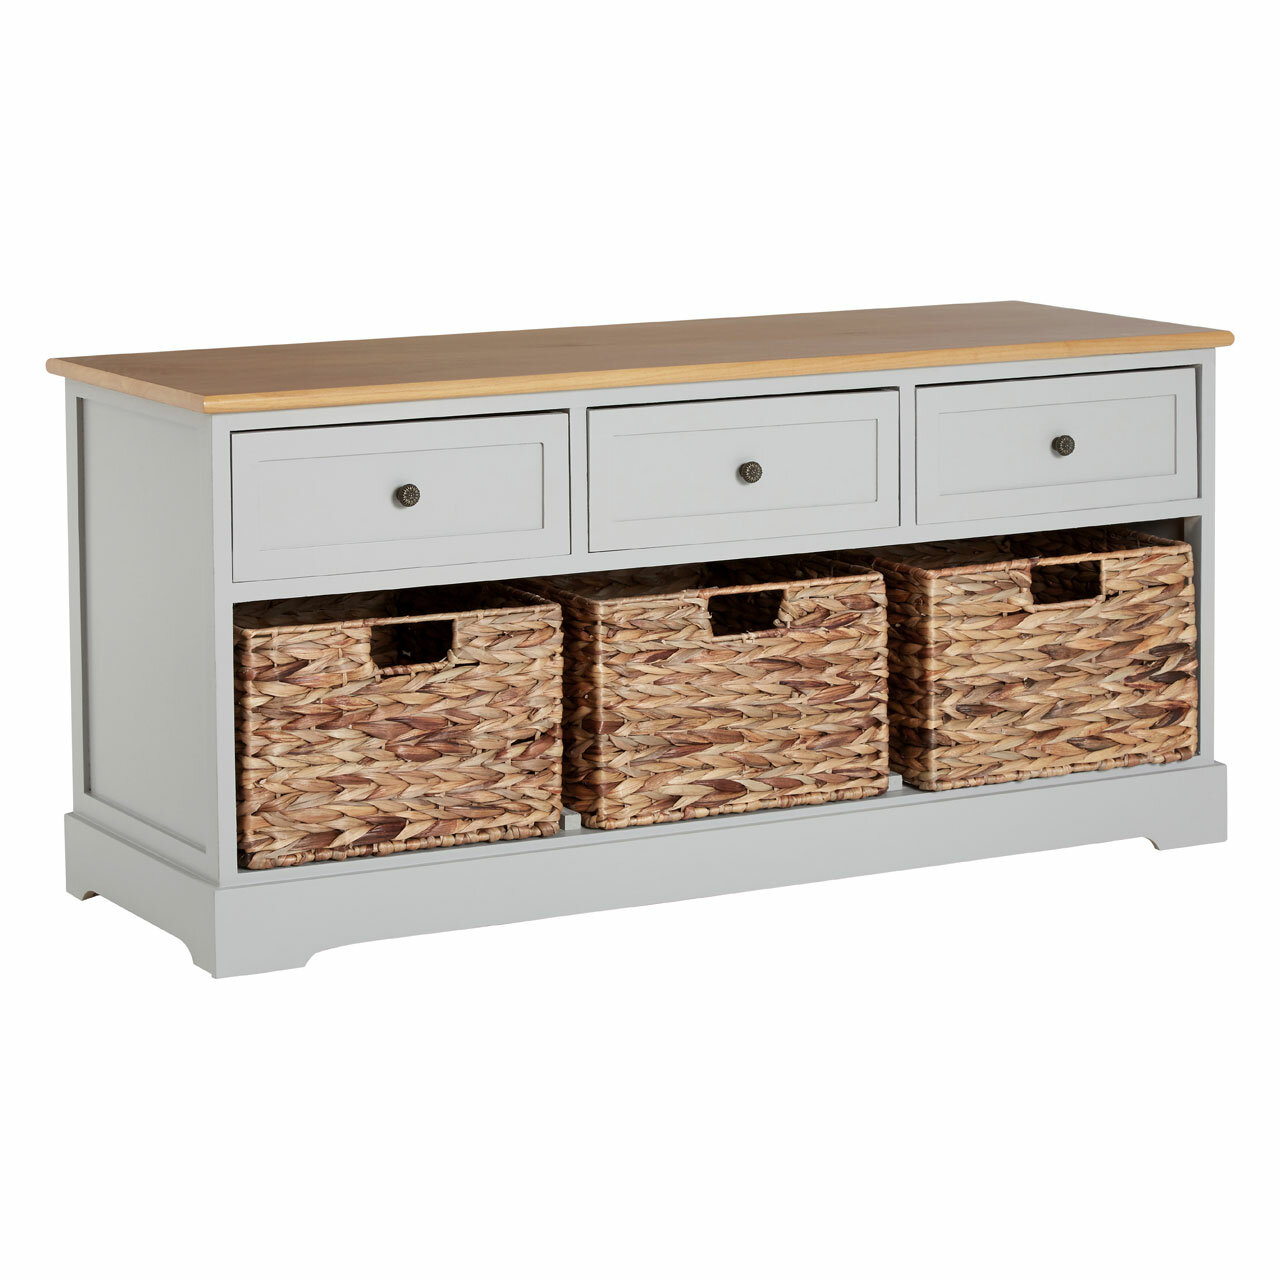 Stupendous Storage Bench With Baskets And Drawers Avalonit Net Uwap Interior Chair Design Uwaporg